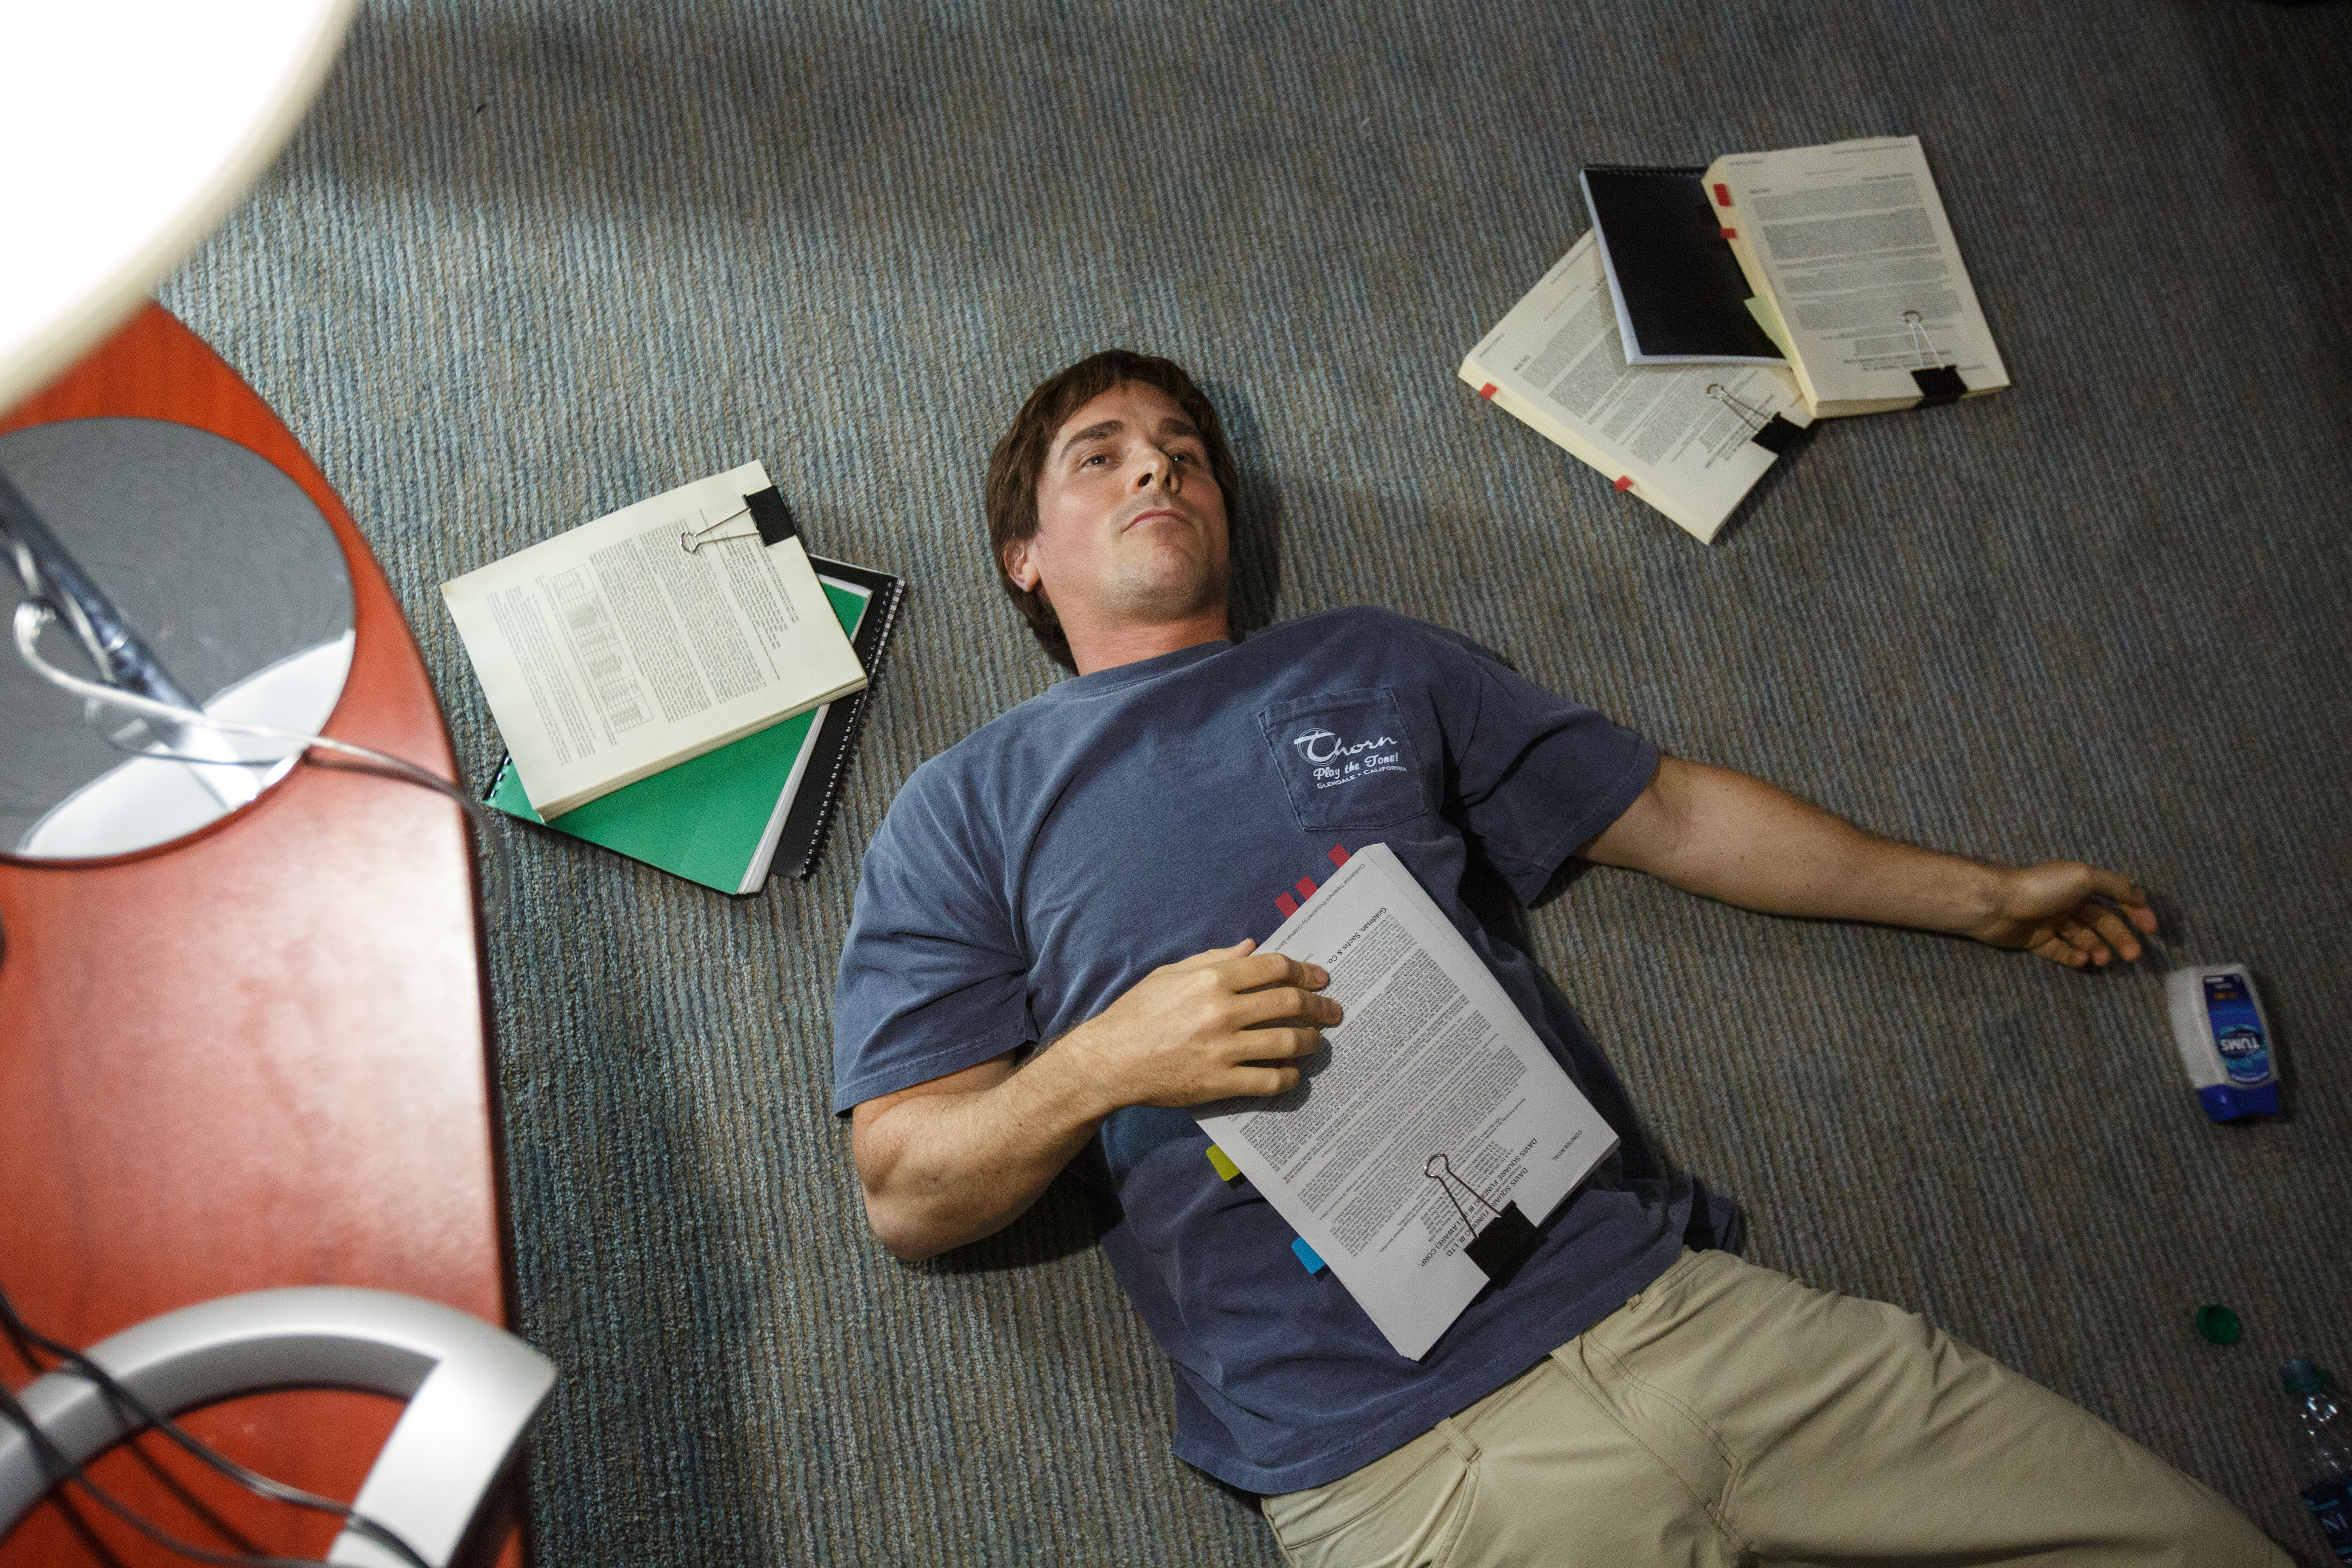 Christian Bale plays Michael Burry in The Big Short from Paramount Pictures and Regency Enterprises